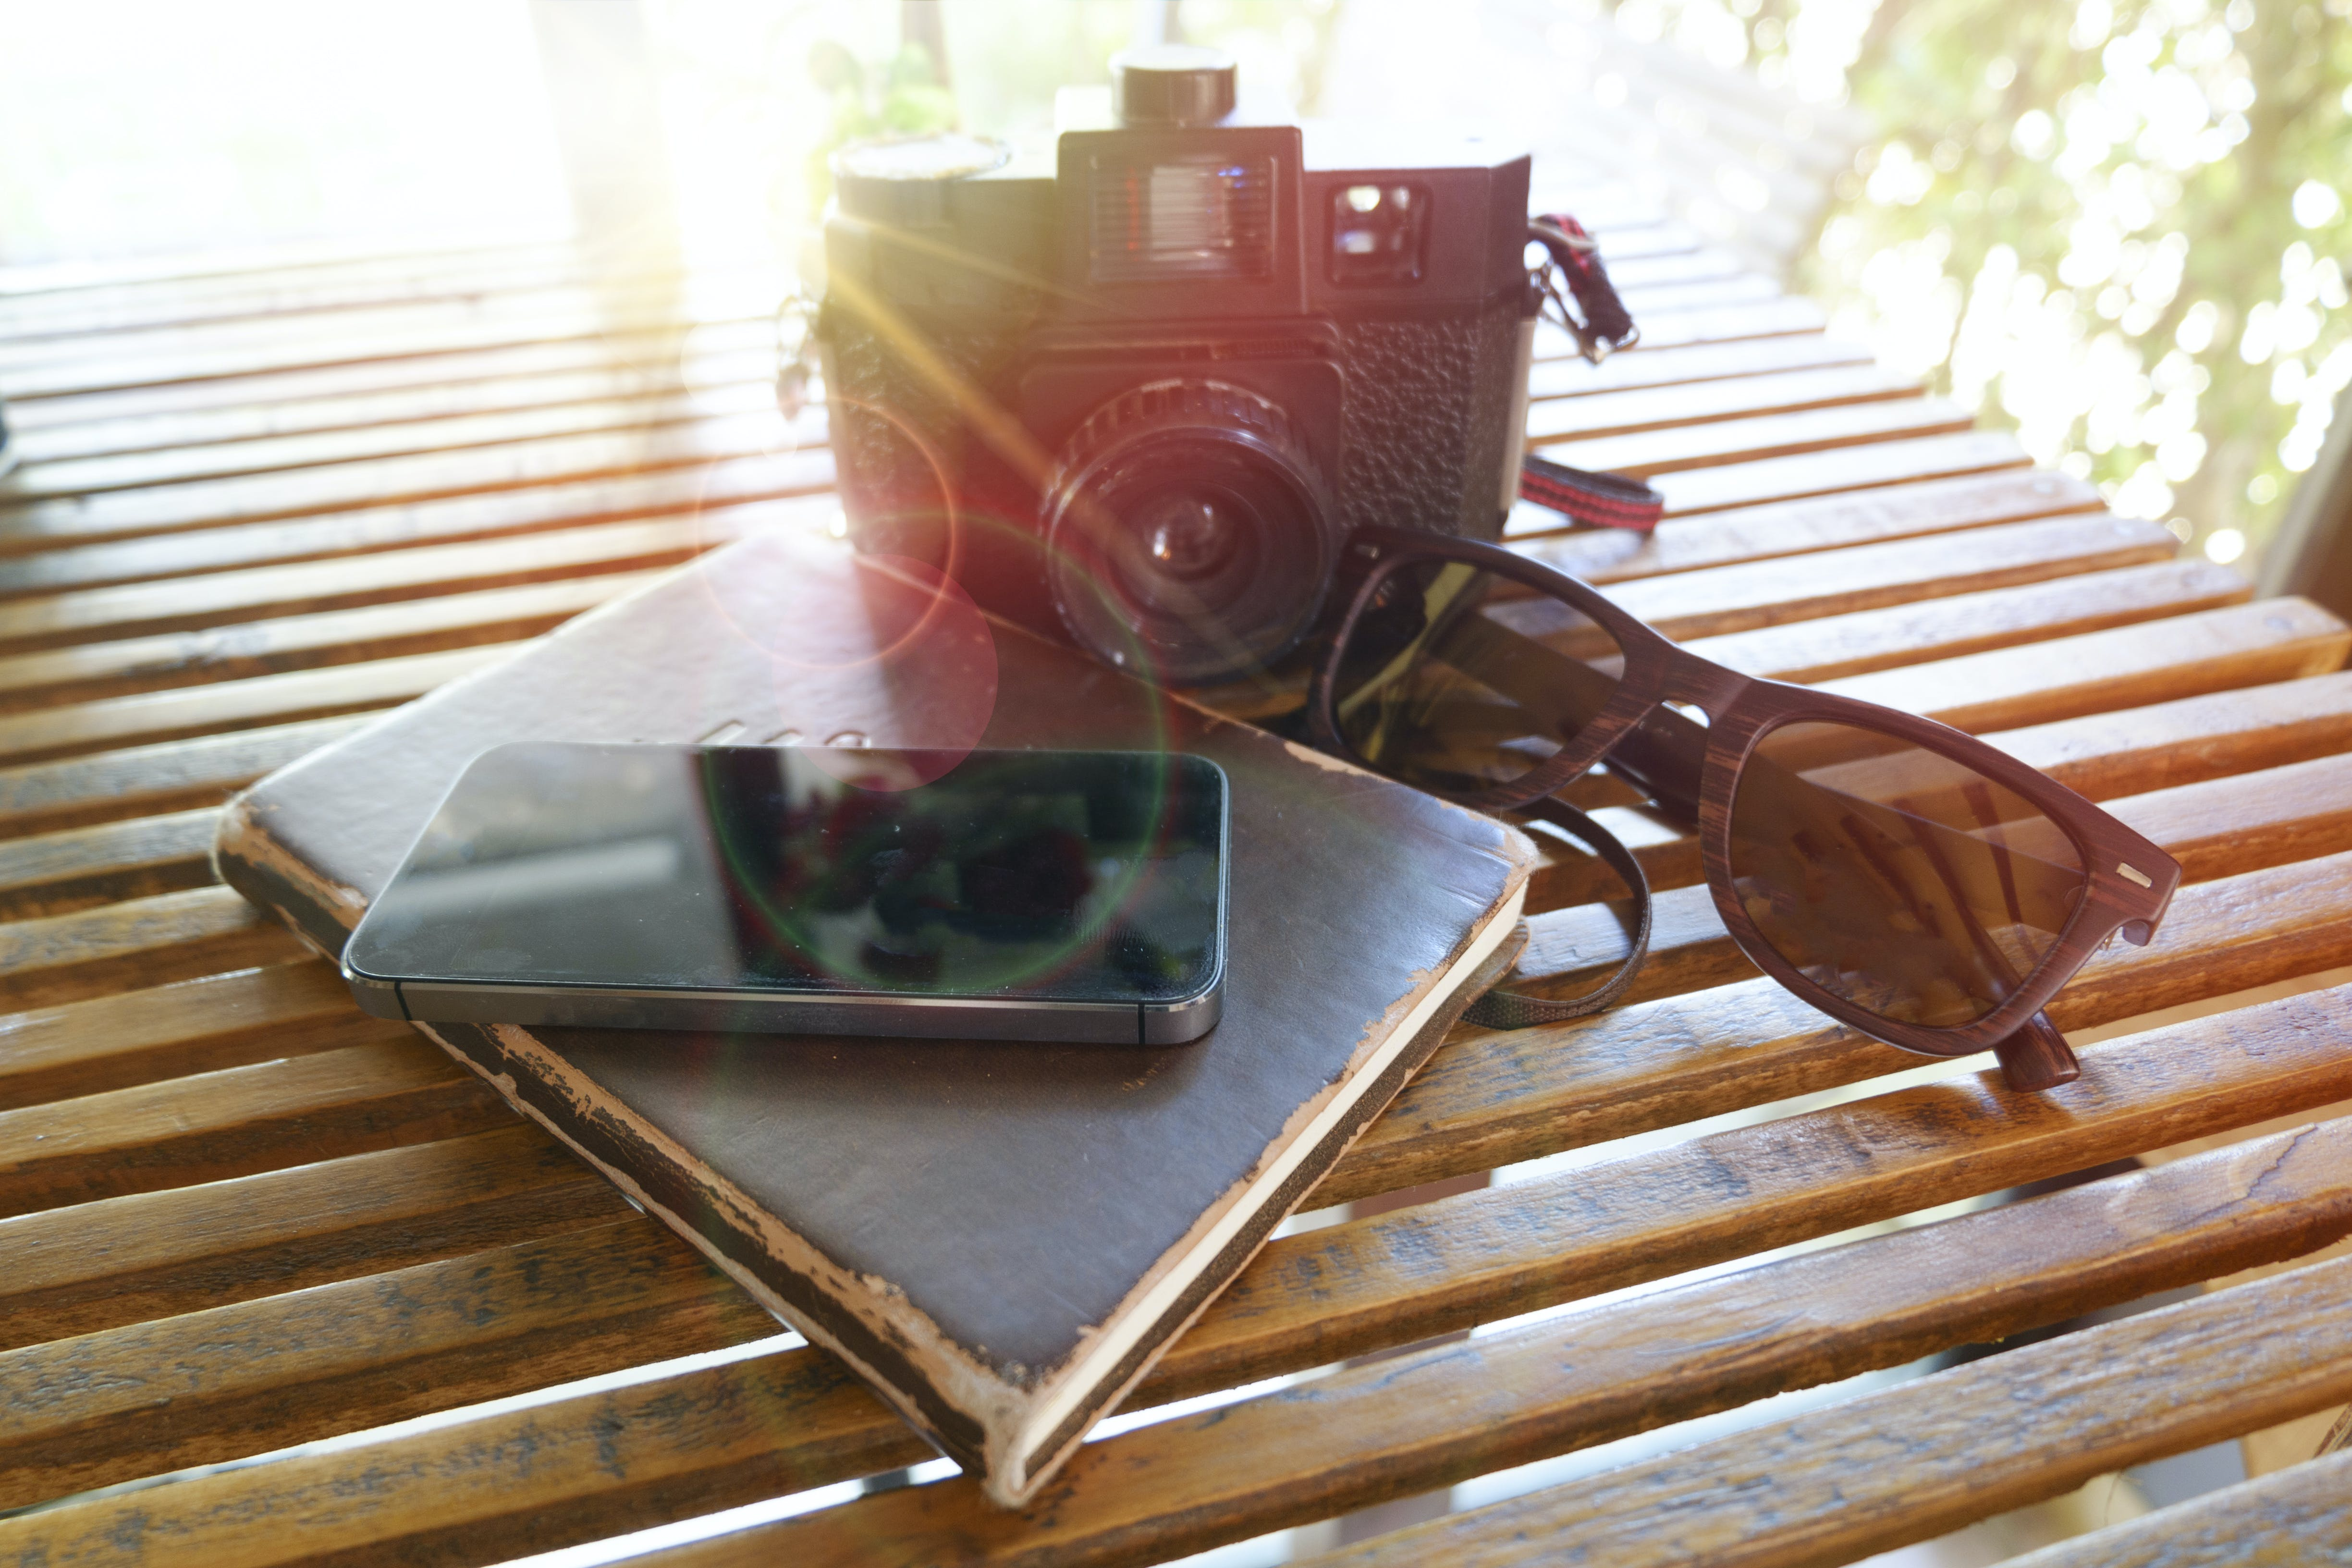 Free stock photo of wood, landscape, sunglasses, camera